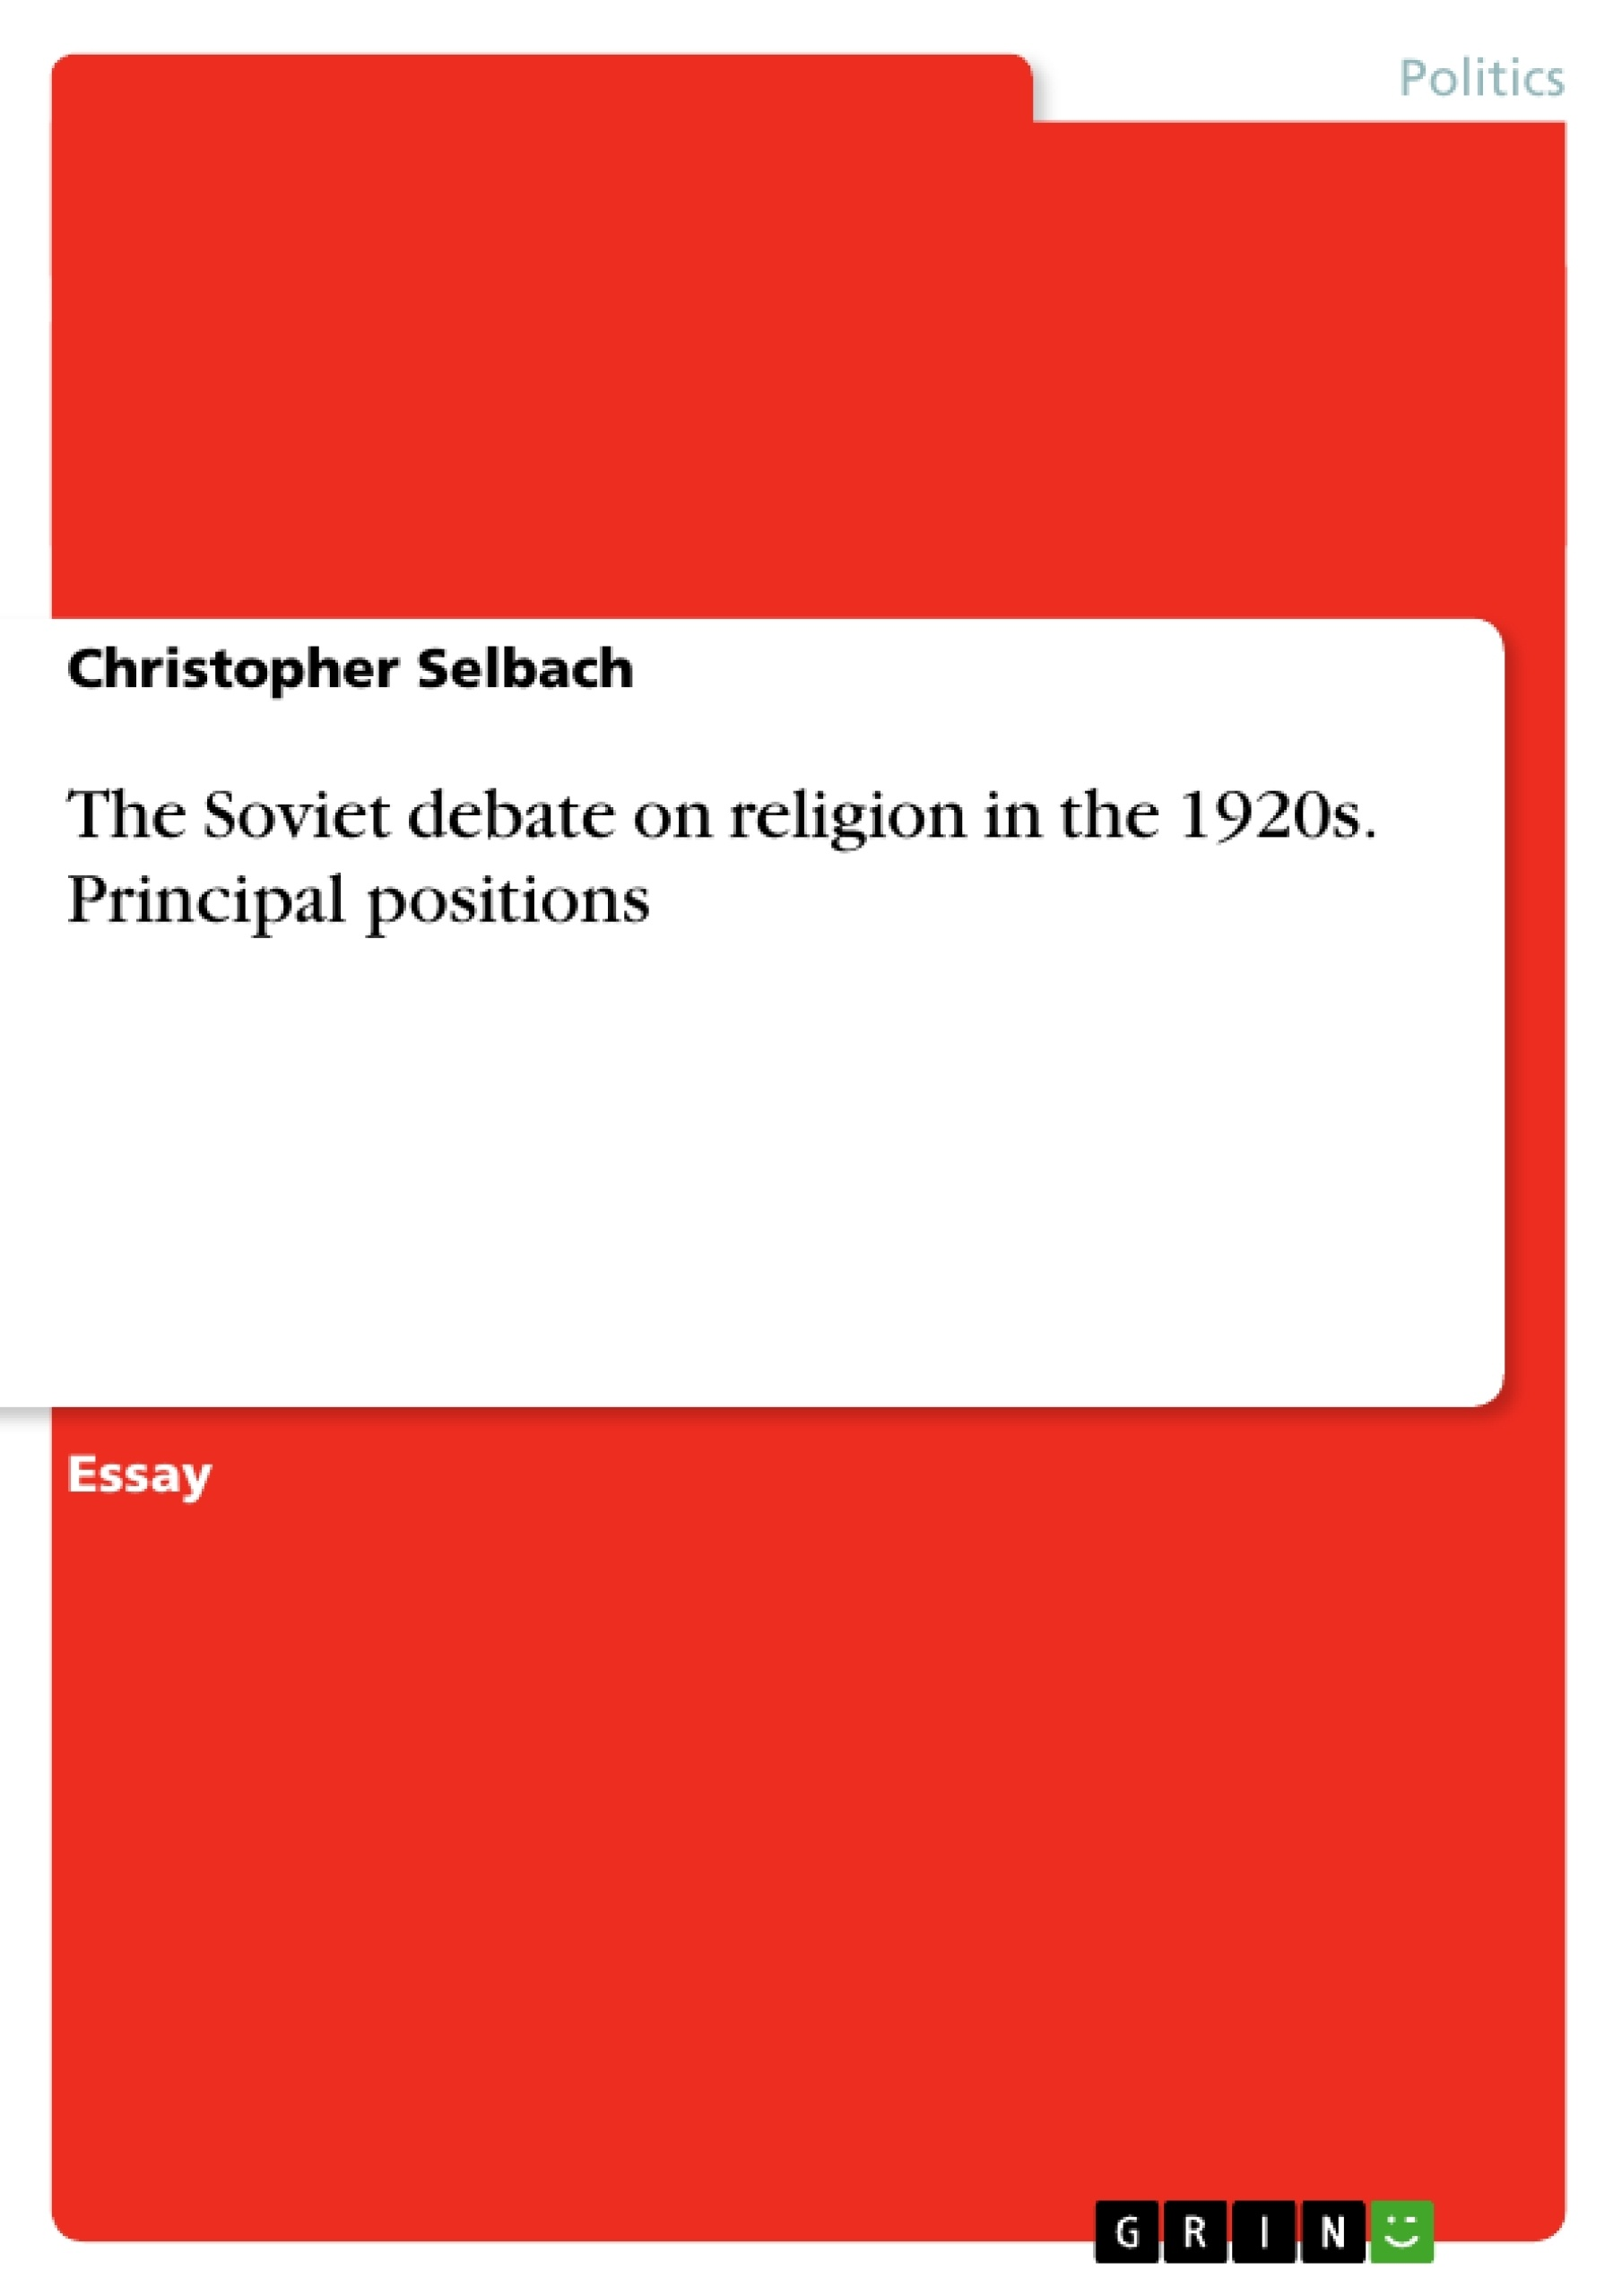 Title: The Soviet debate on religion in the 1920s. Principal positions